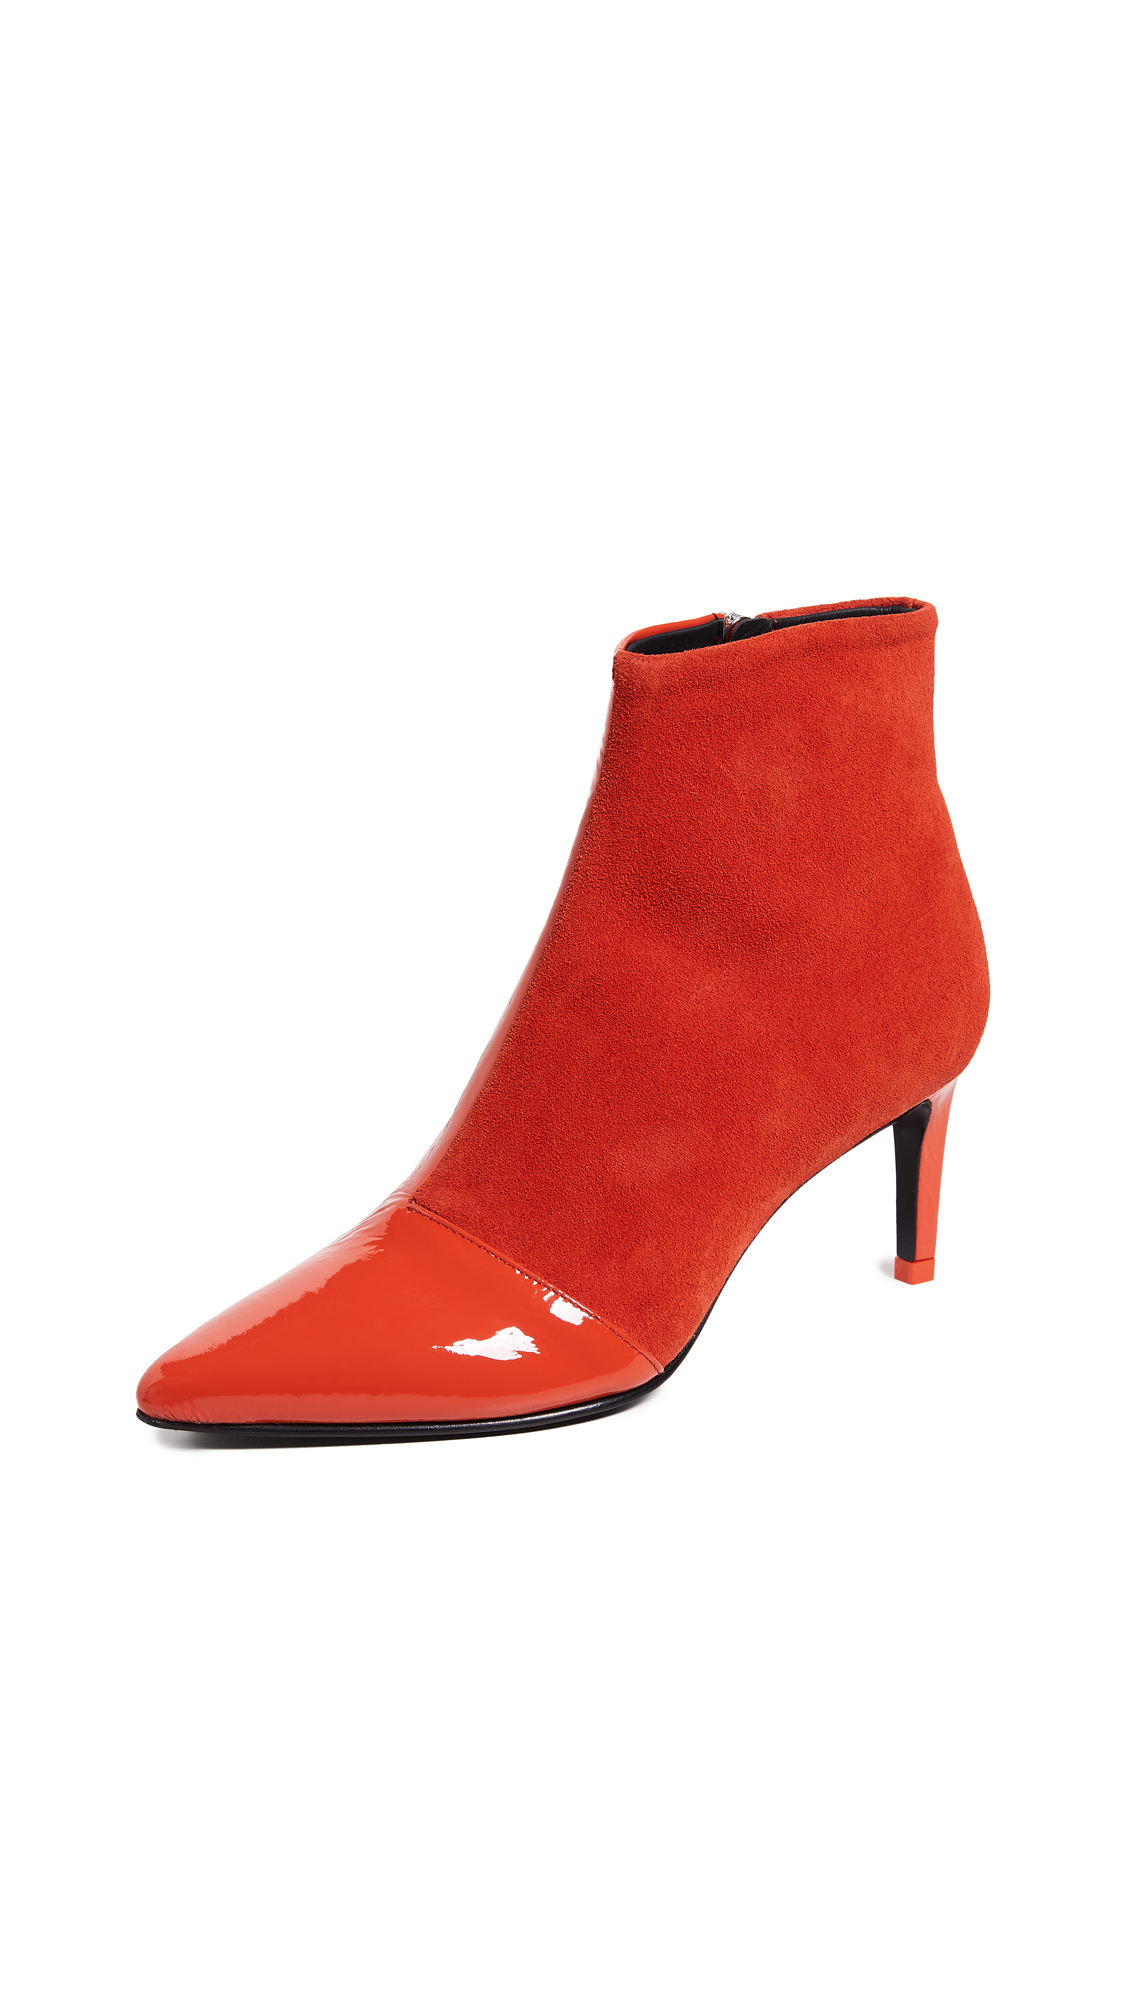 Rag & Bone Beha Booties - Orange